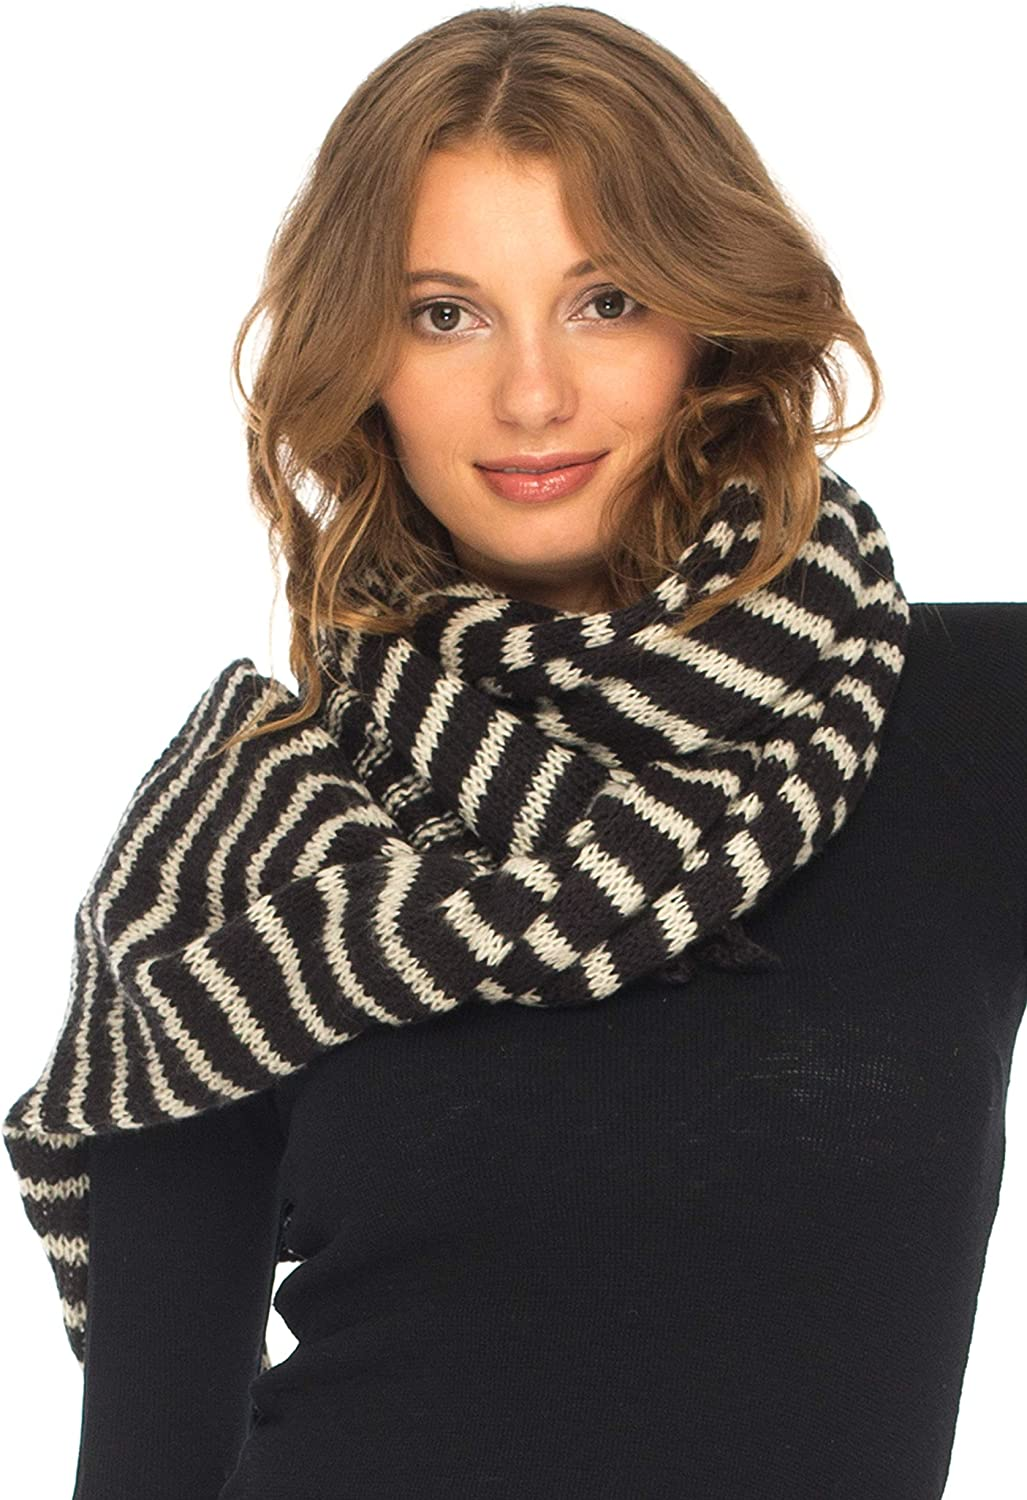 SHU-SHI New popularity Womens Oversized Striped Blanket New products world's highest quality popular Scarf Thick Shawl Wrap